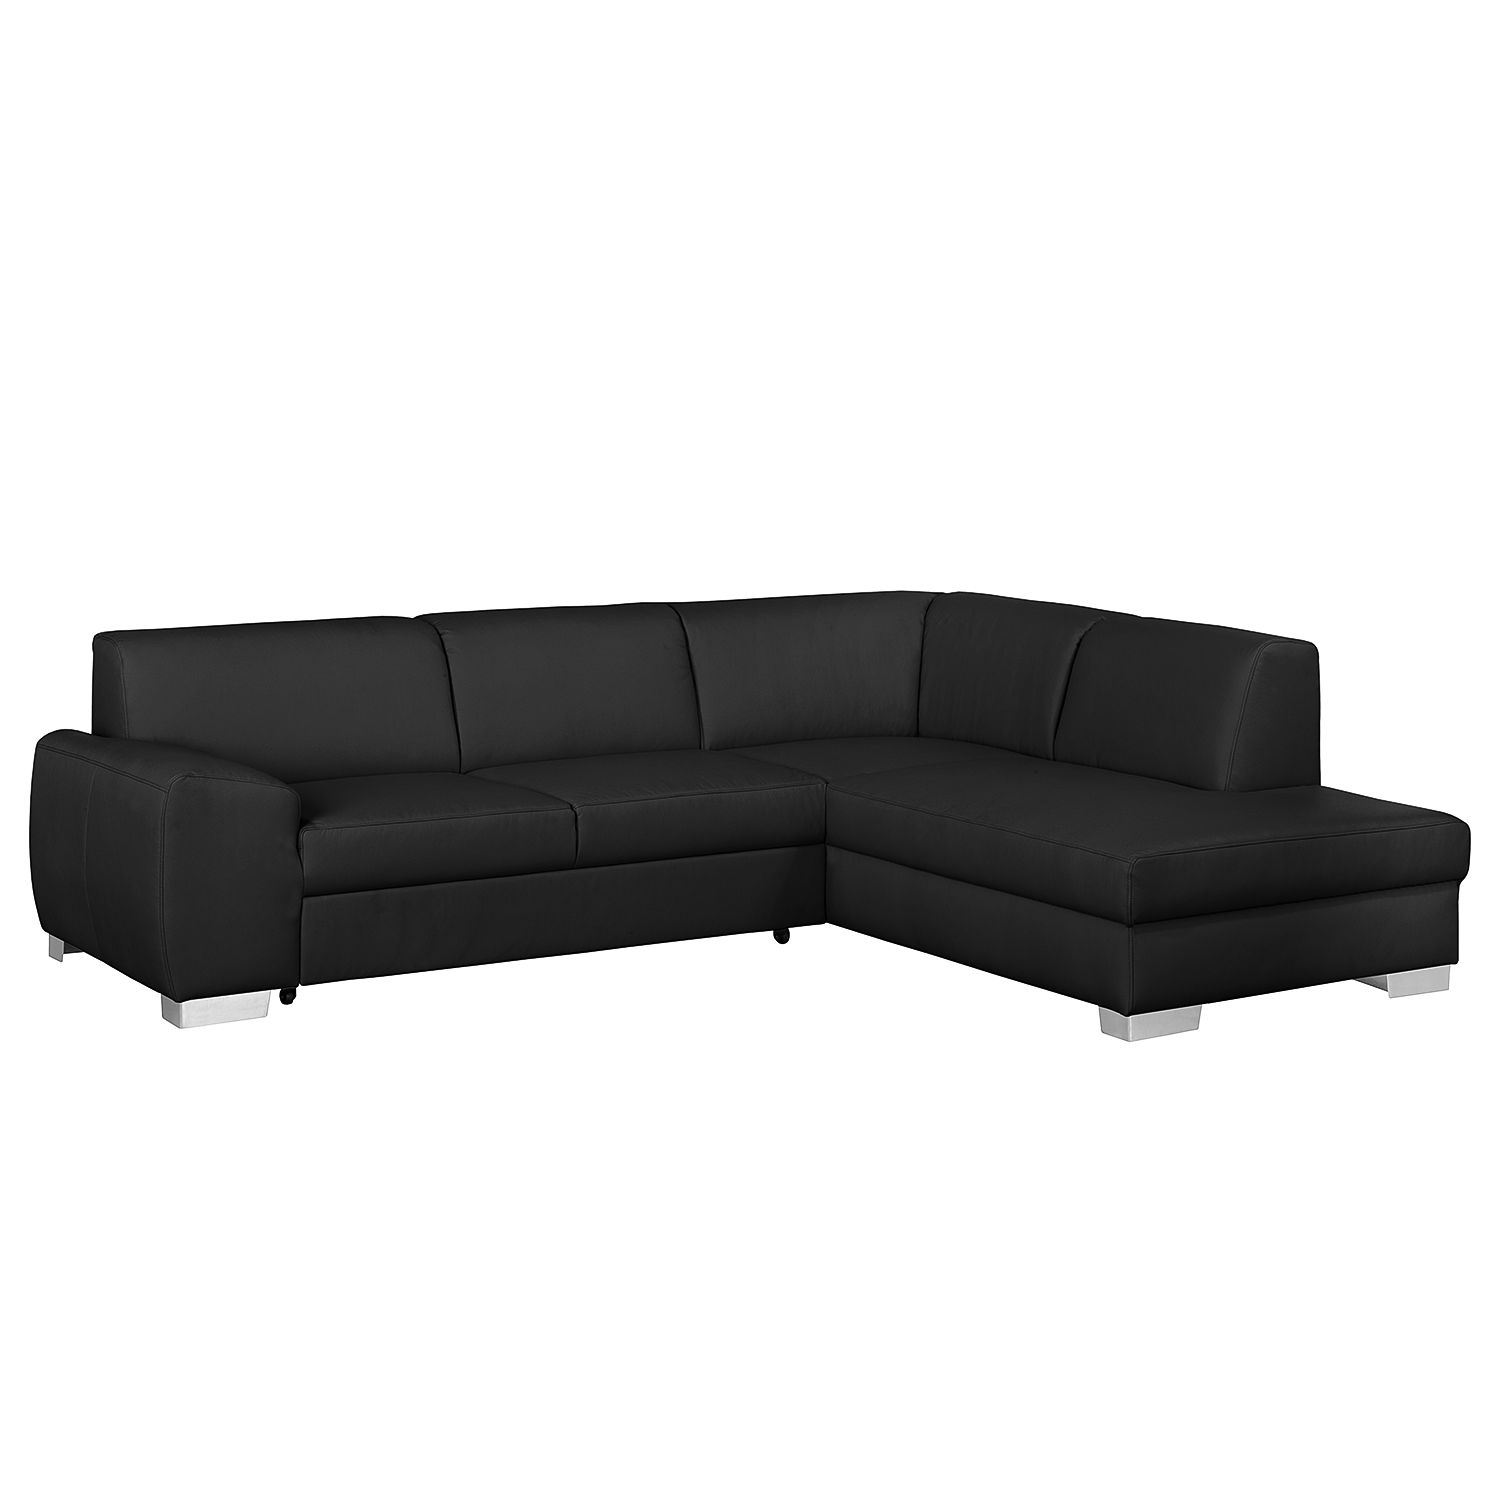 kunstleder couch gnstig kunstleder sofa puntiro mit kunstleder home kunstleder couch reinigen. Black Bedroom Furniture Sets. Home Design Ideas